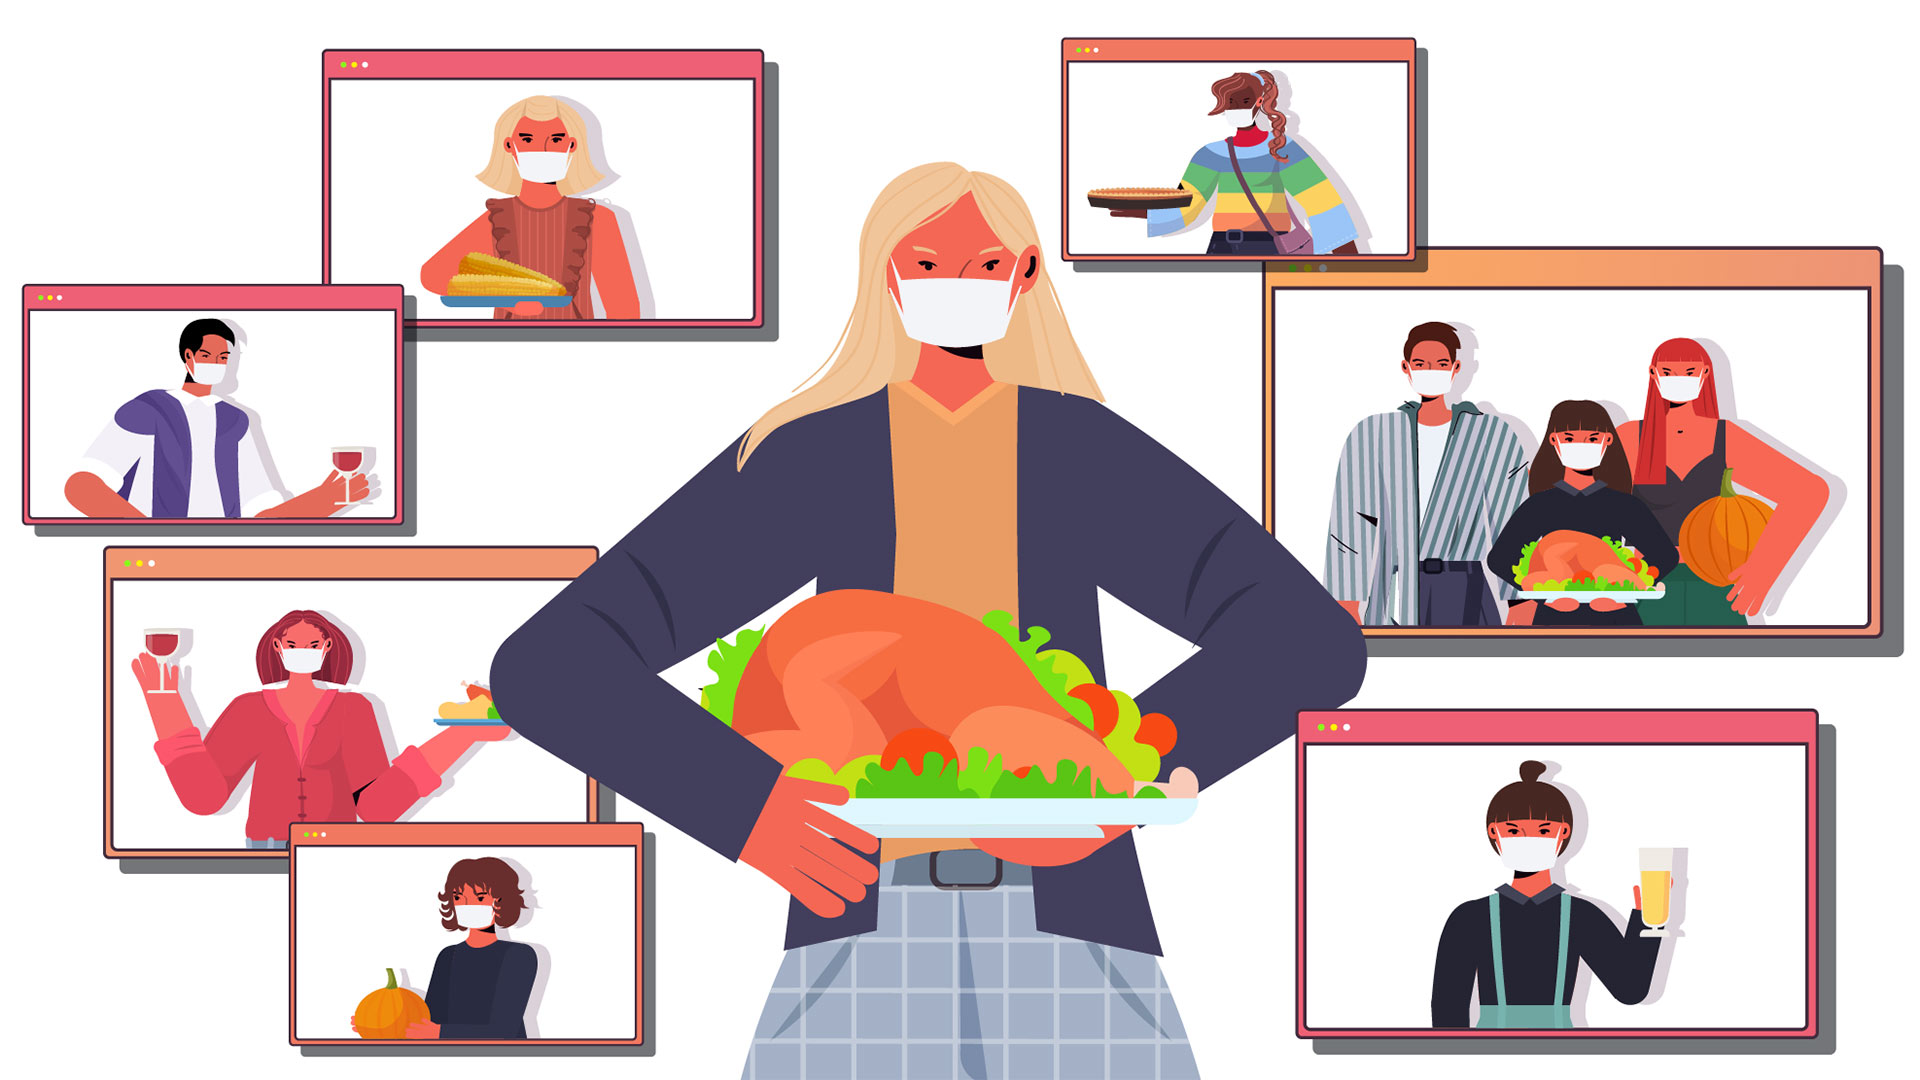 With the CDC recommending staying home this Thanksgiving, the Help Center, a student-run peer counseling and crisis intervention hotline, offered tips to make the most of the quieter-than-usual holiday. (Illustration by iStock)